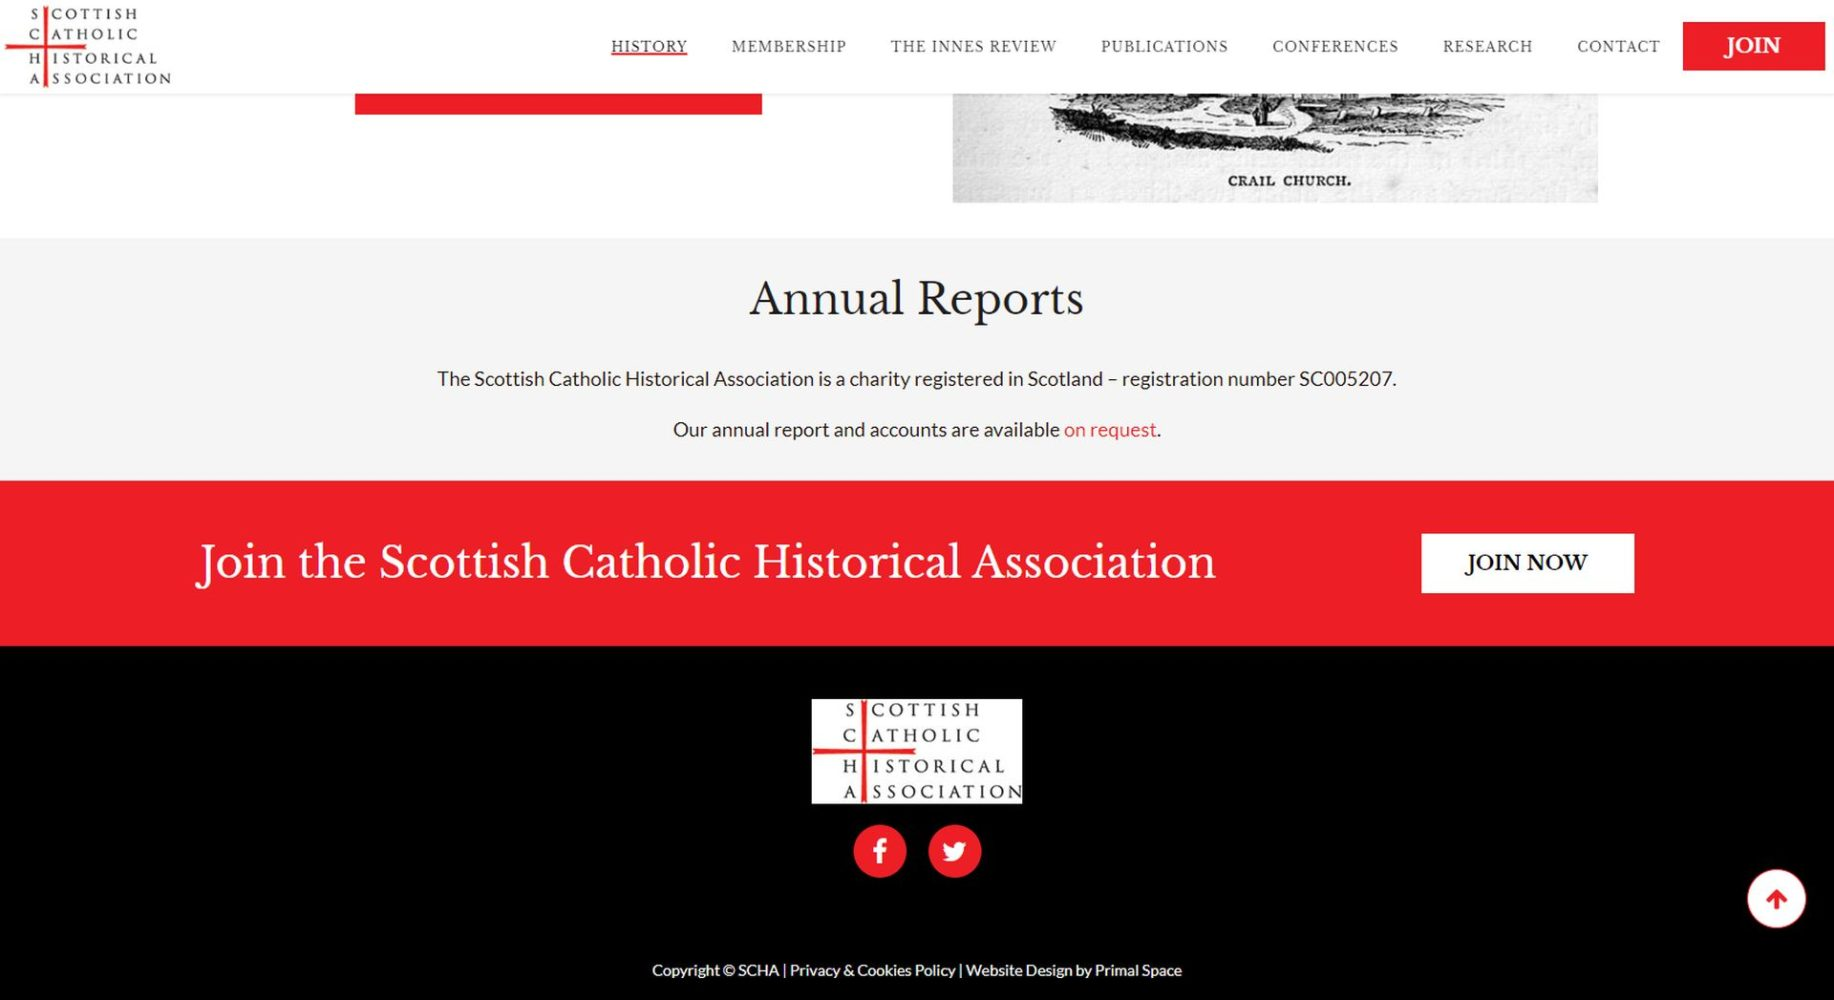 Scottish Catholic Historical Association Website Design Footer